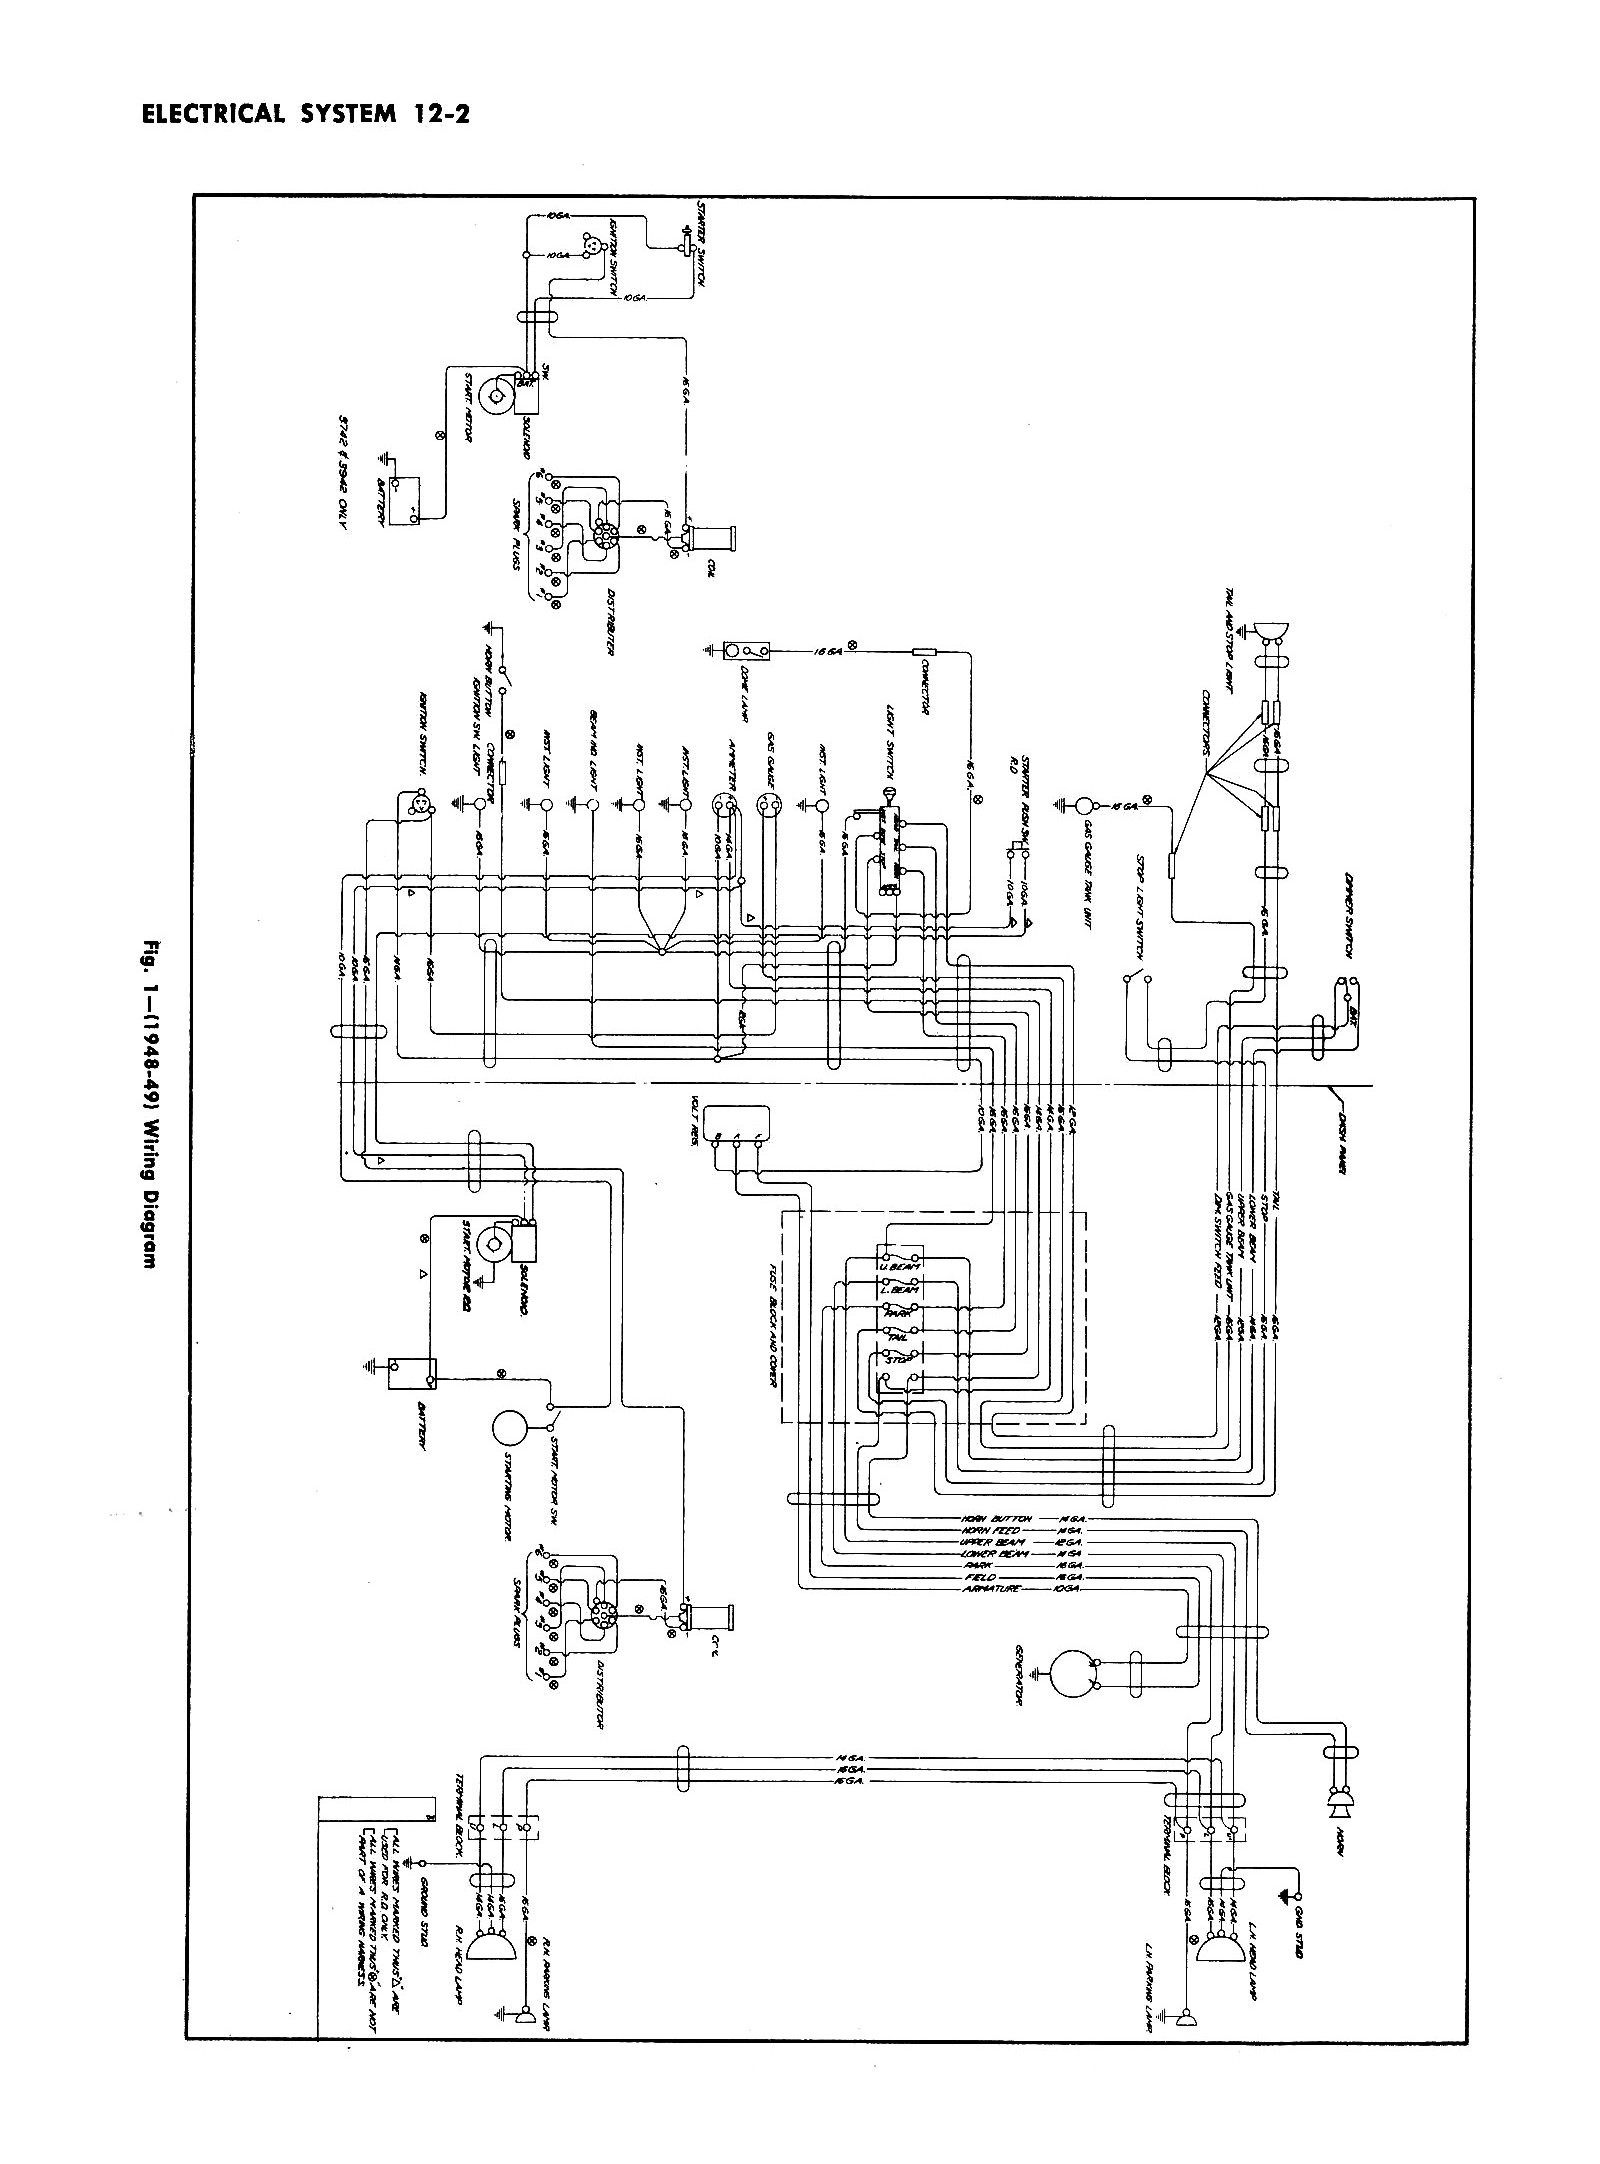 51 chevy wiring diagram wiring diagram schematic name 51 chevrolet bel air  parts 1951 chevy deluxe